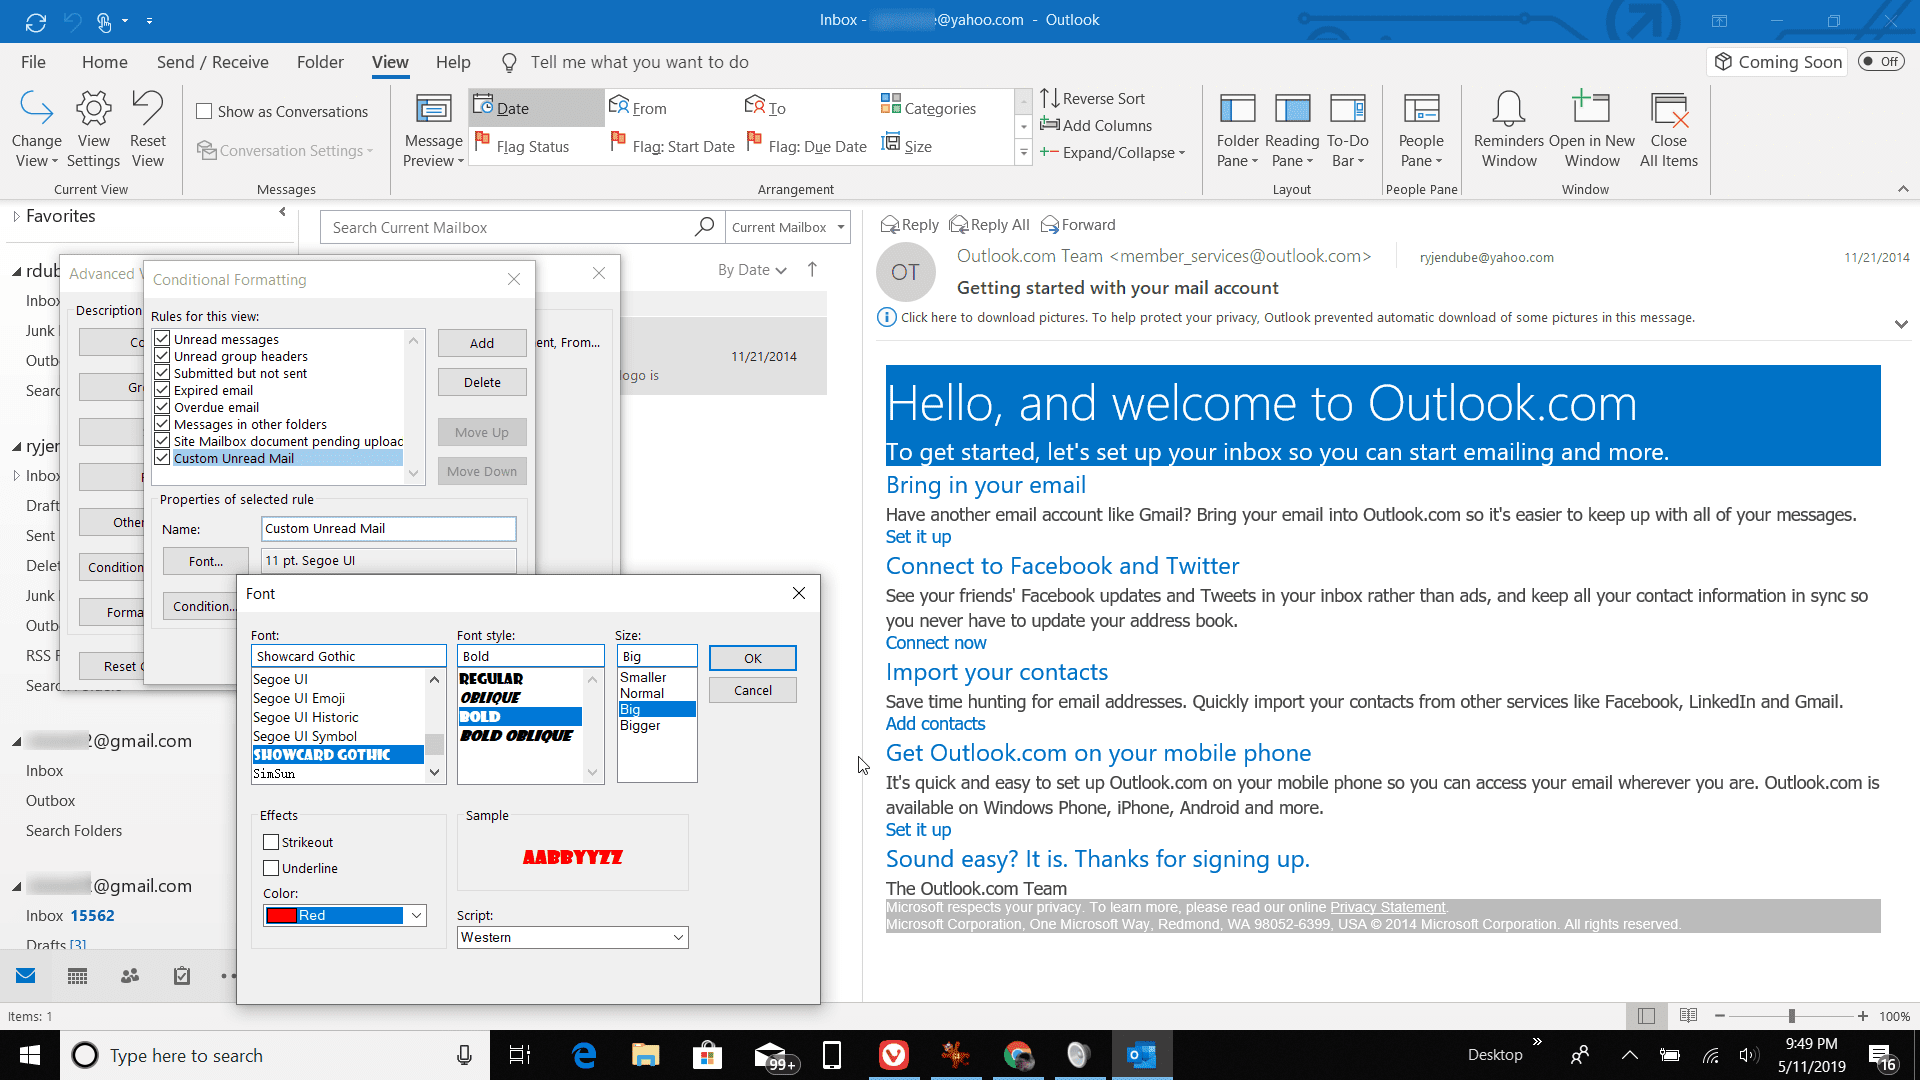 How to Change the Font of Unread Messages in Outlook